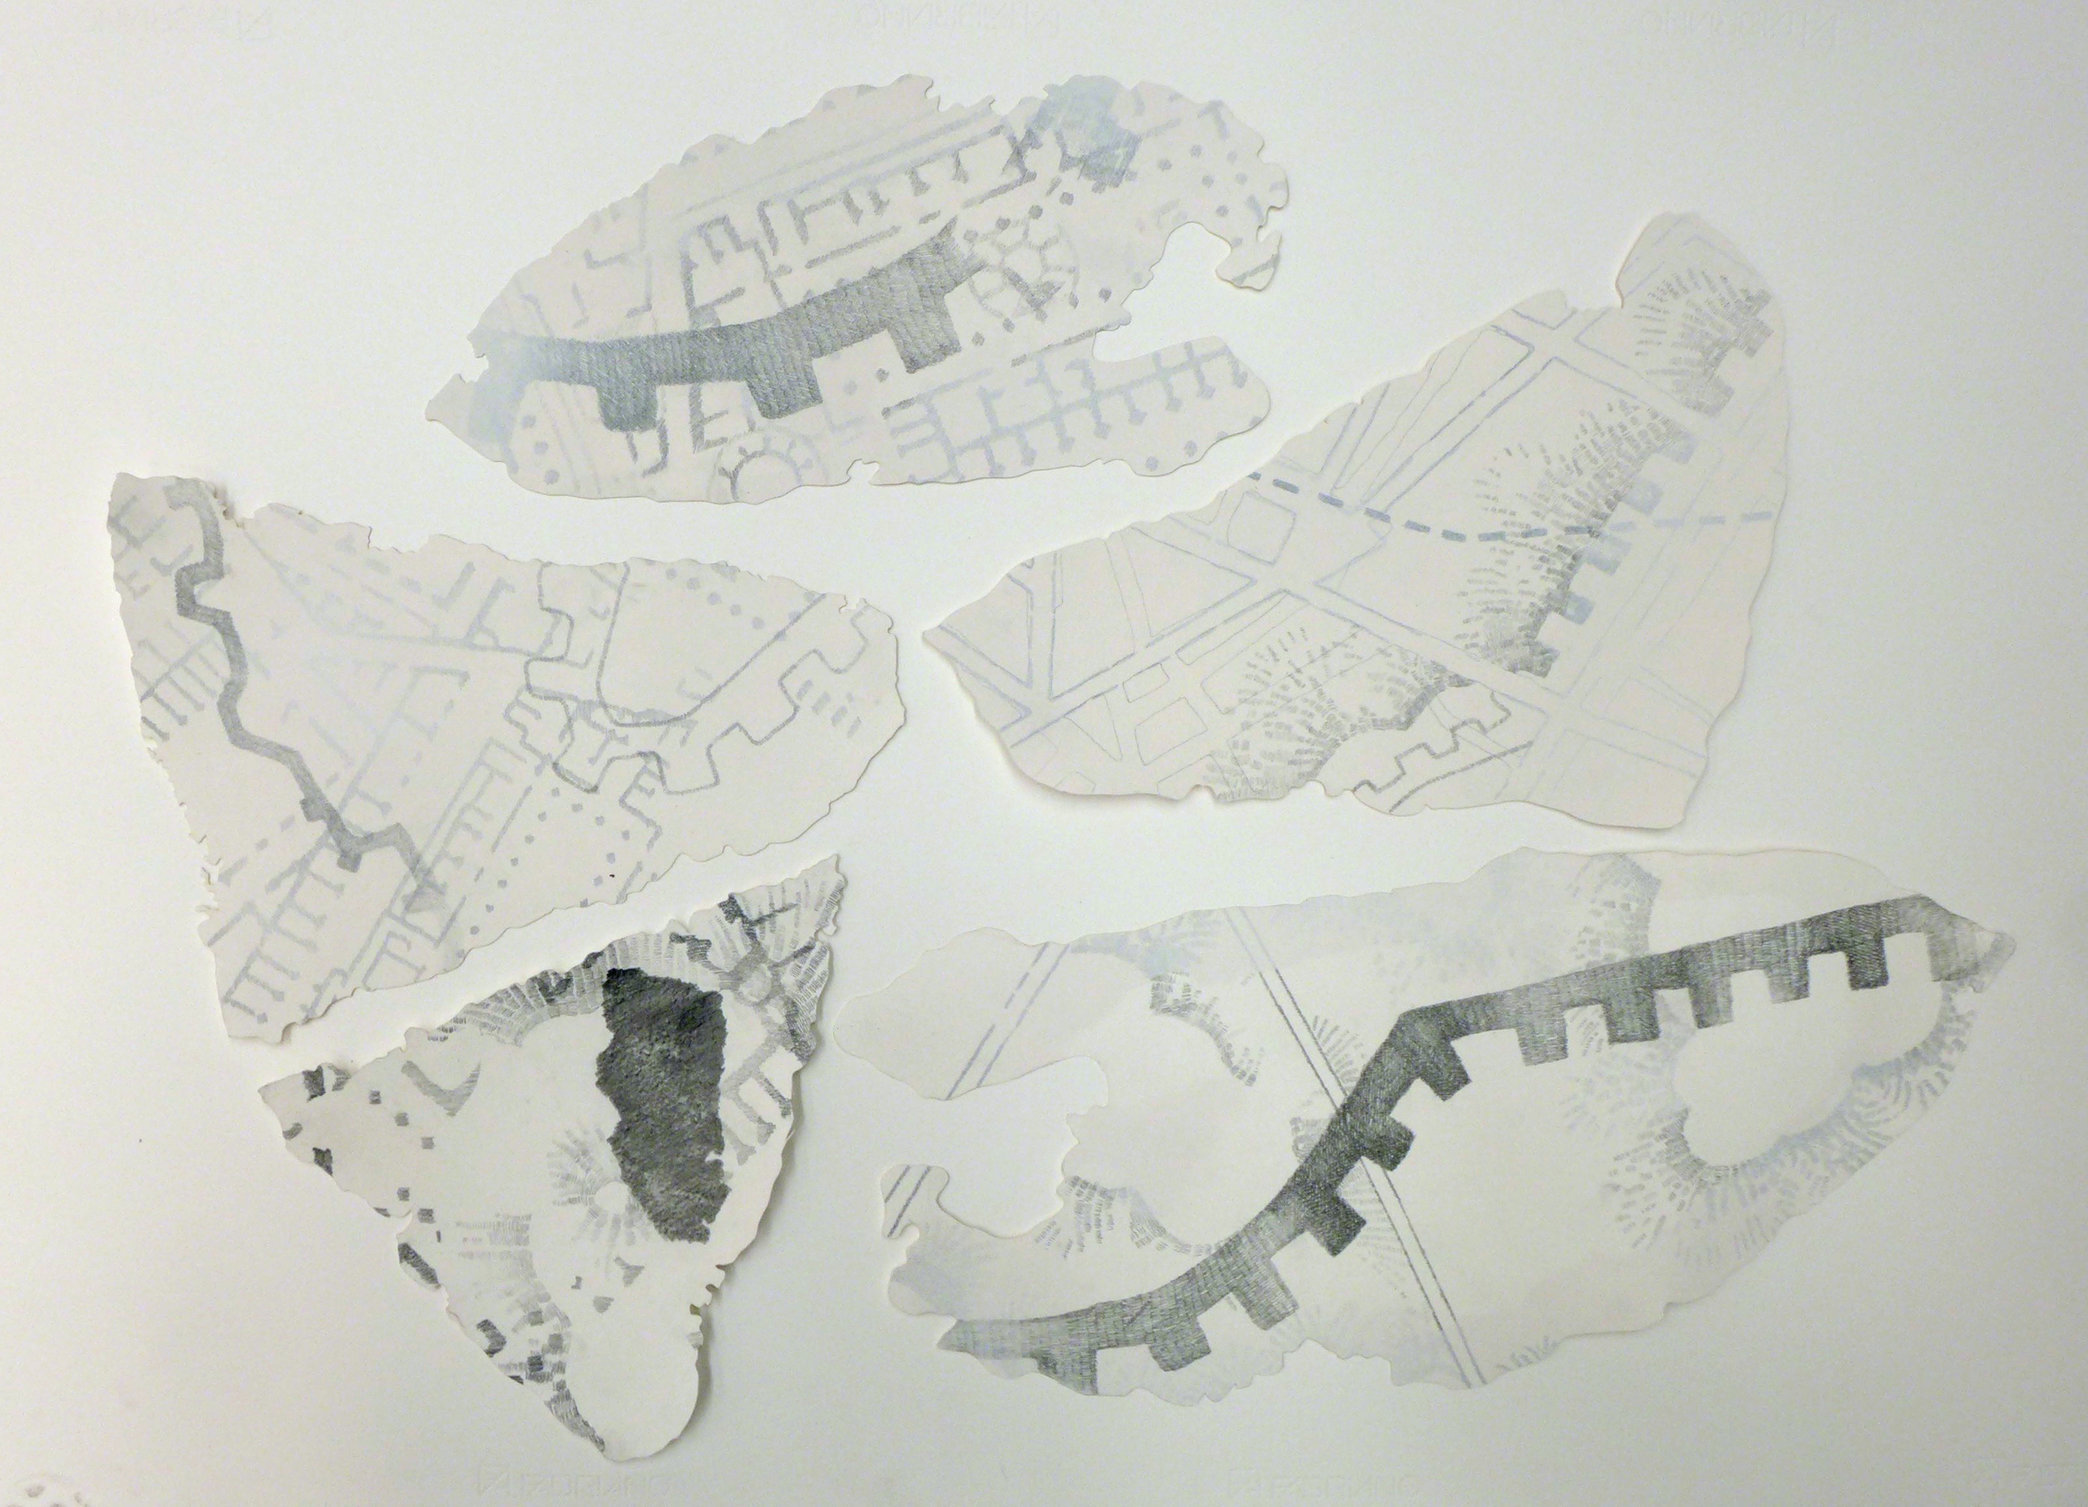 Tracce fragments